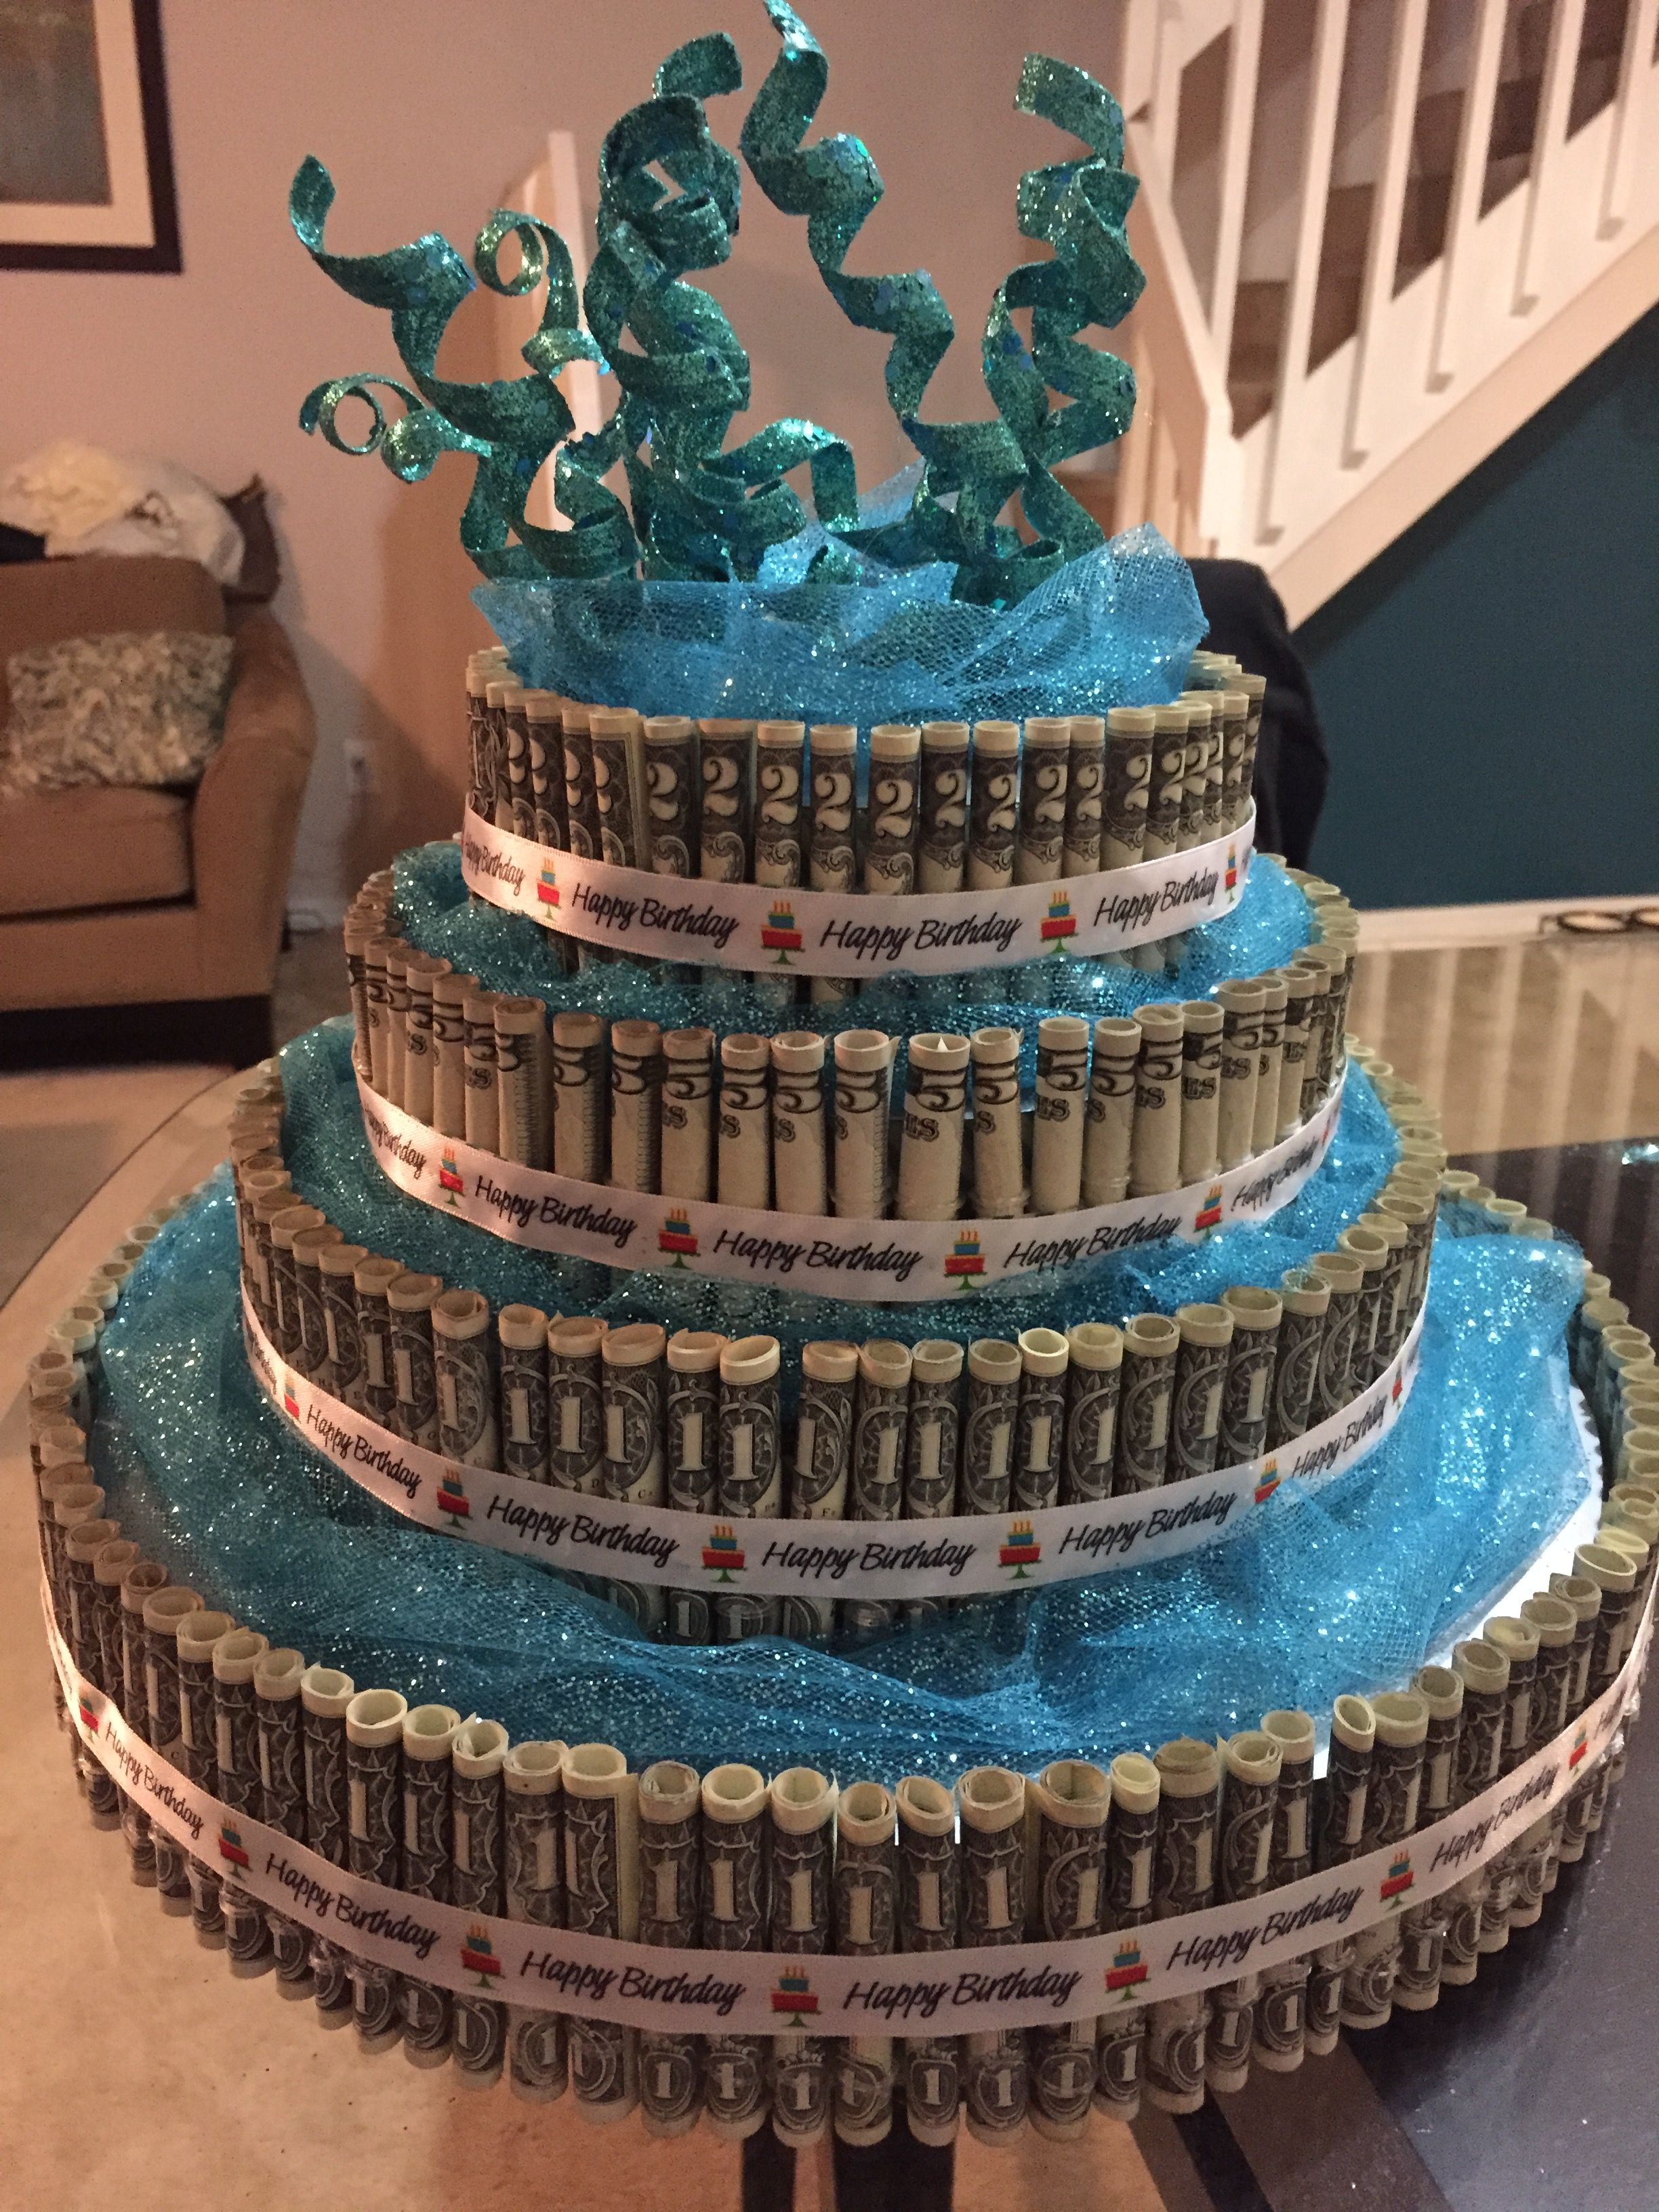 Dollar Bill Cake 4 Tiers Made From Floral Rounds Sweet 16 Cake 1